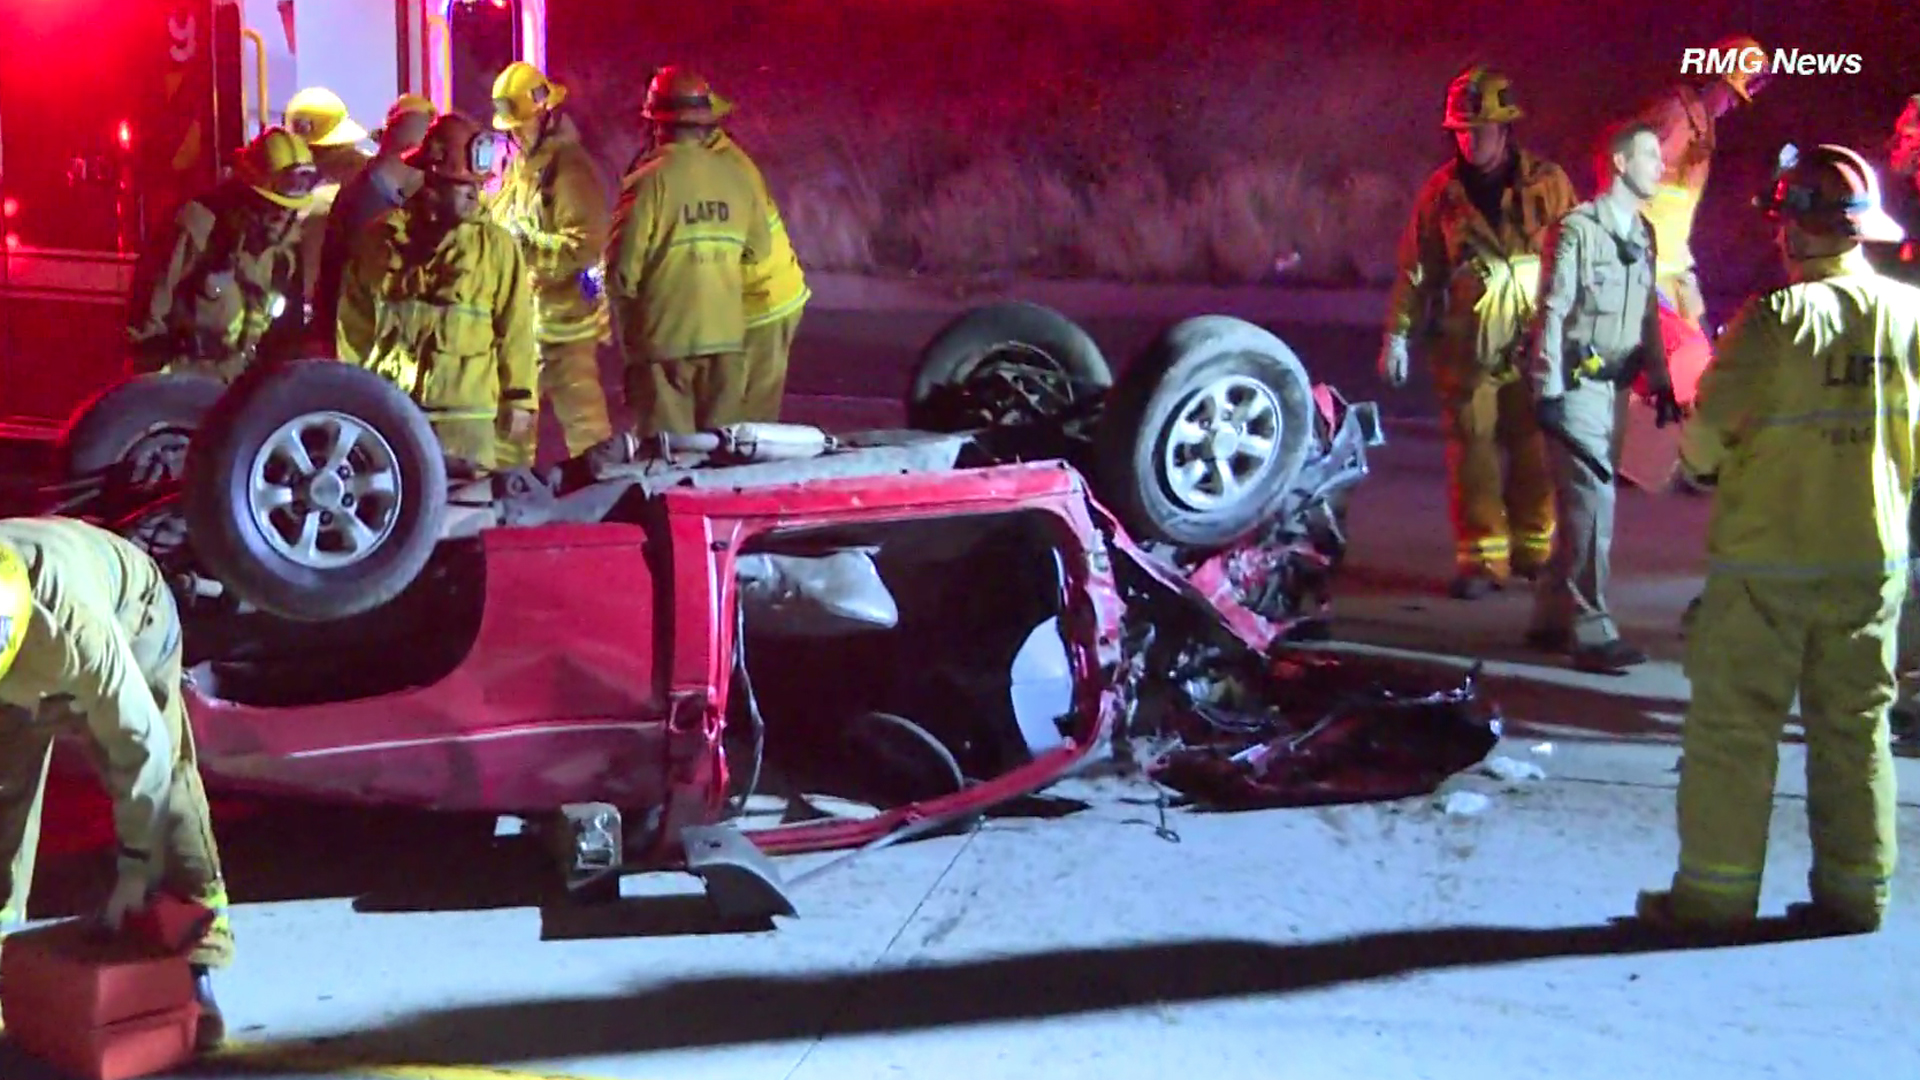 Firefighters respond to the scene of a fatal crash involving a Nissan pickup truck in Mission Hills on Dec. 9, 2018. (Credit: RMG News)